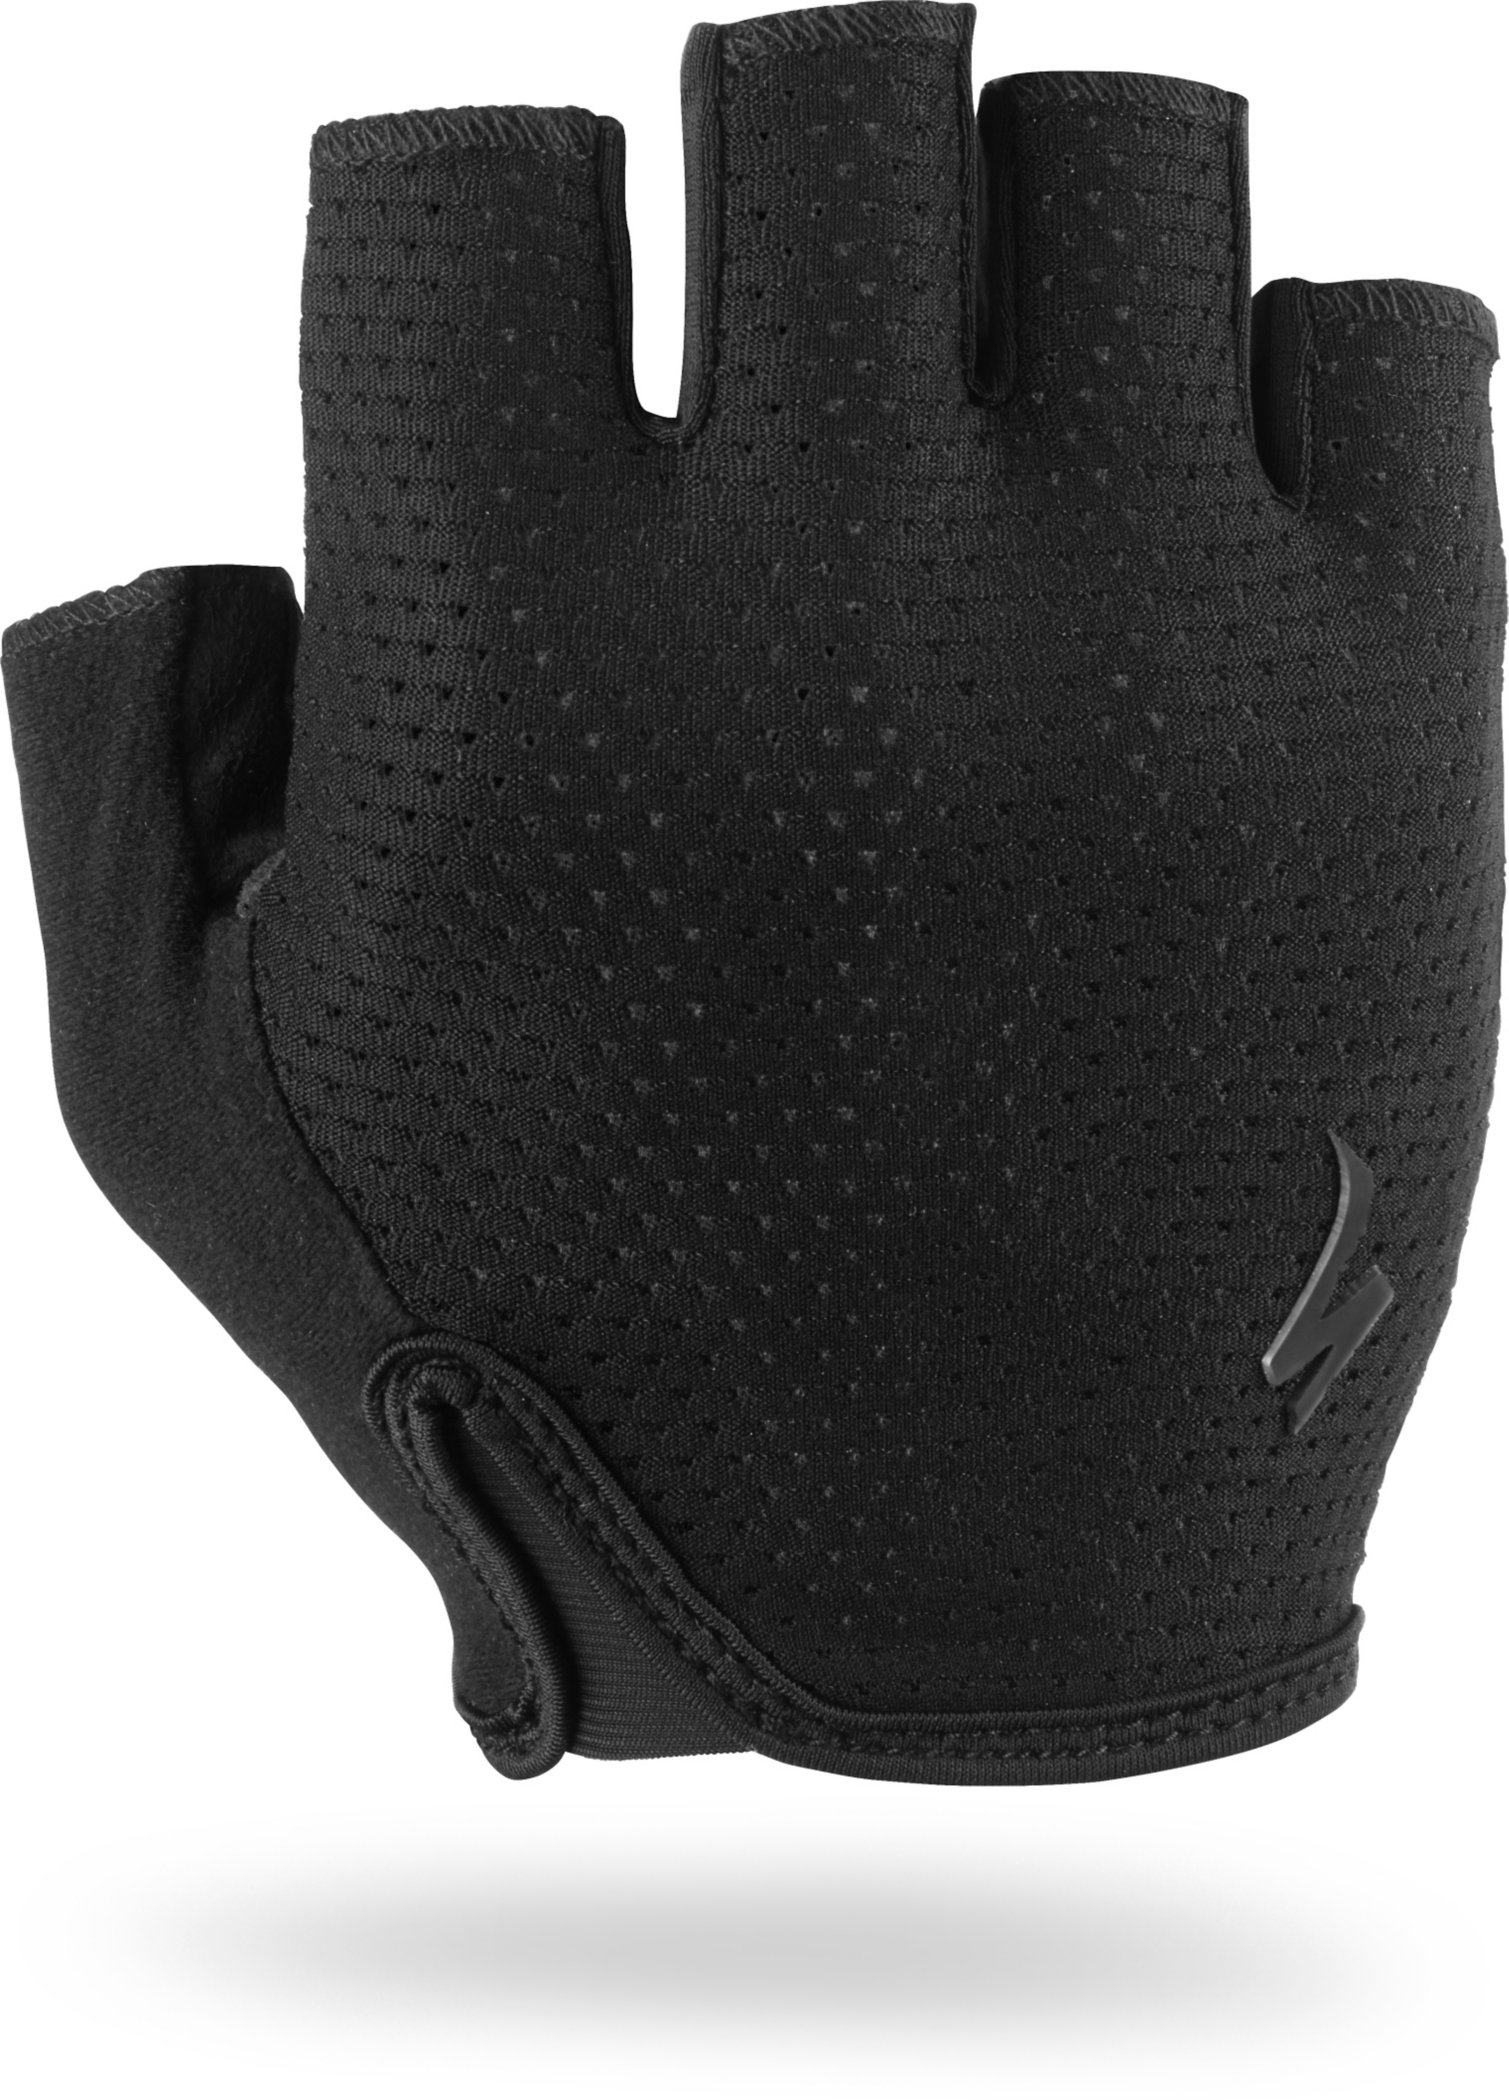 SPECIALIZED BG GRAIL GLOVE SF BLK S - Bikedreams & Dustbikes